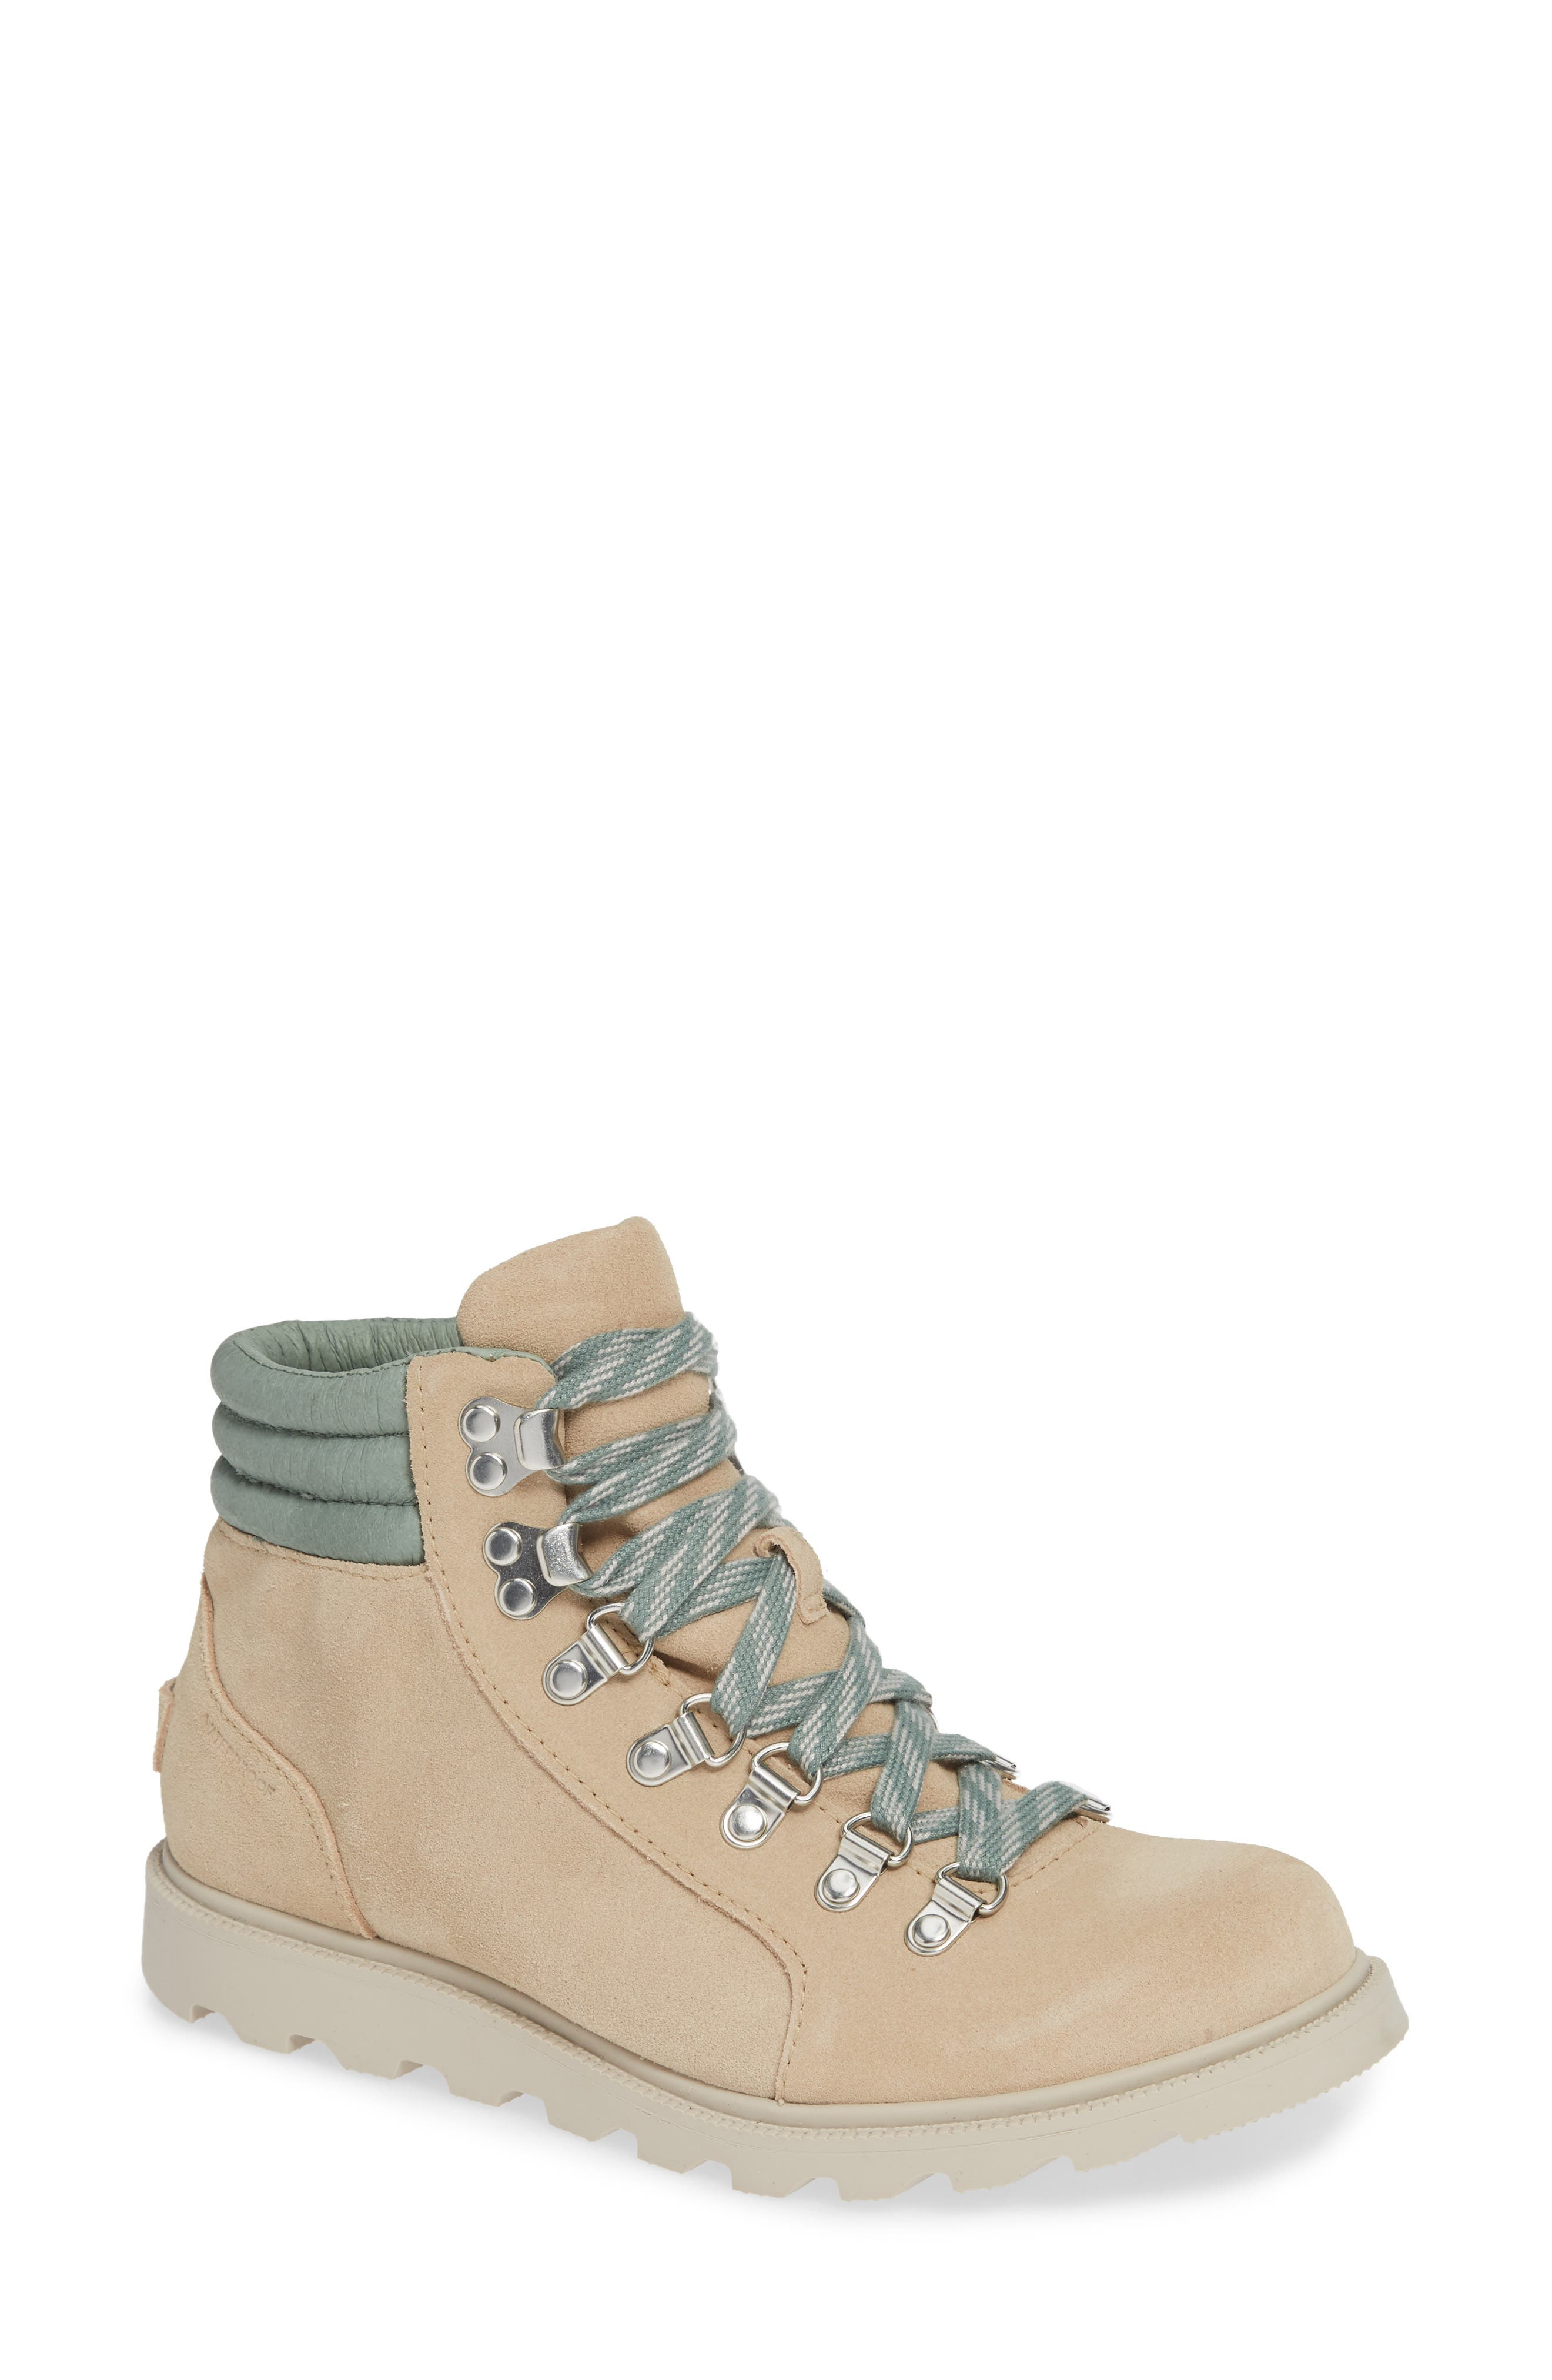 Ainsley Conquest Waterproof Boot,                         Main,                         color, OATMEAL